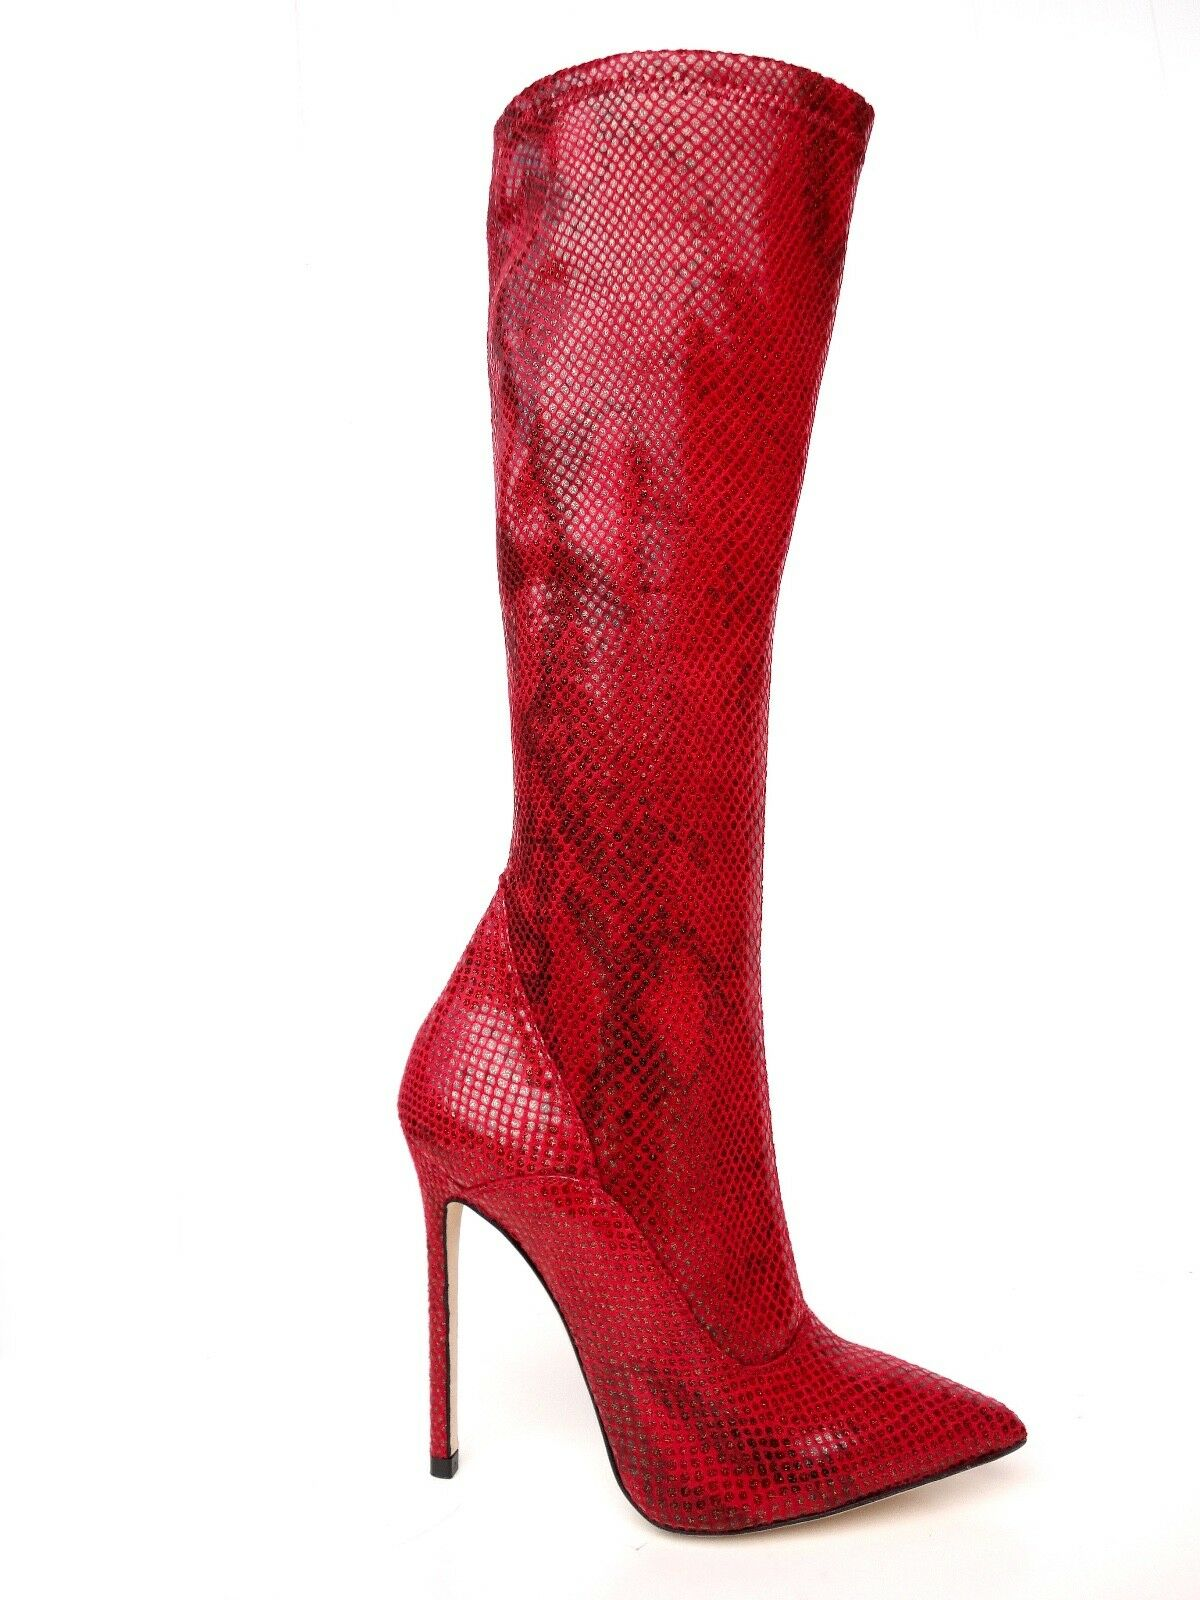 Grandes zapatos con descuento GIOHEL KNEE HIGH HEELS BOOTS STIEFEL STIVALI POINTY PYTHON STRETCH RED ROSSO 36